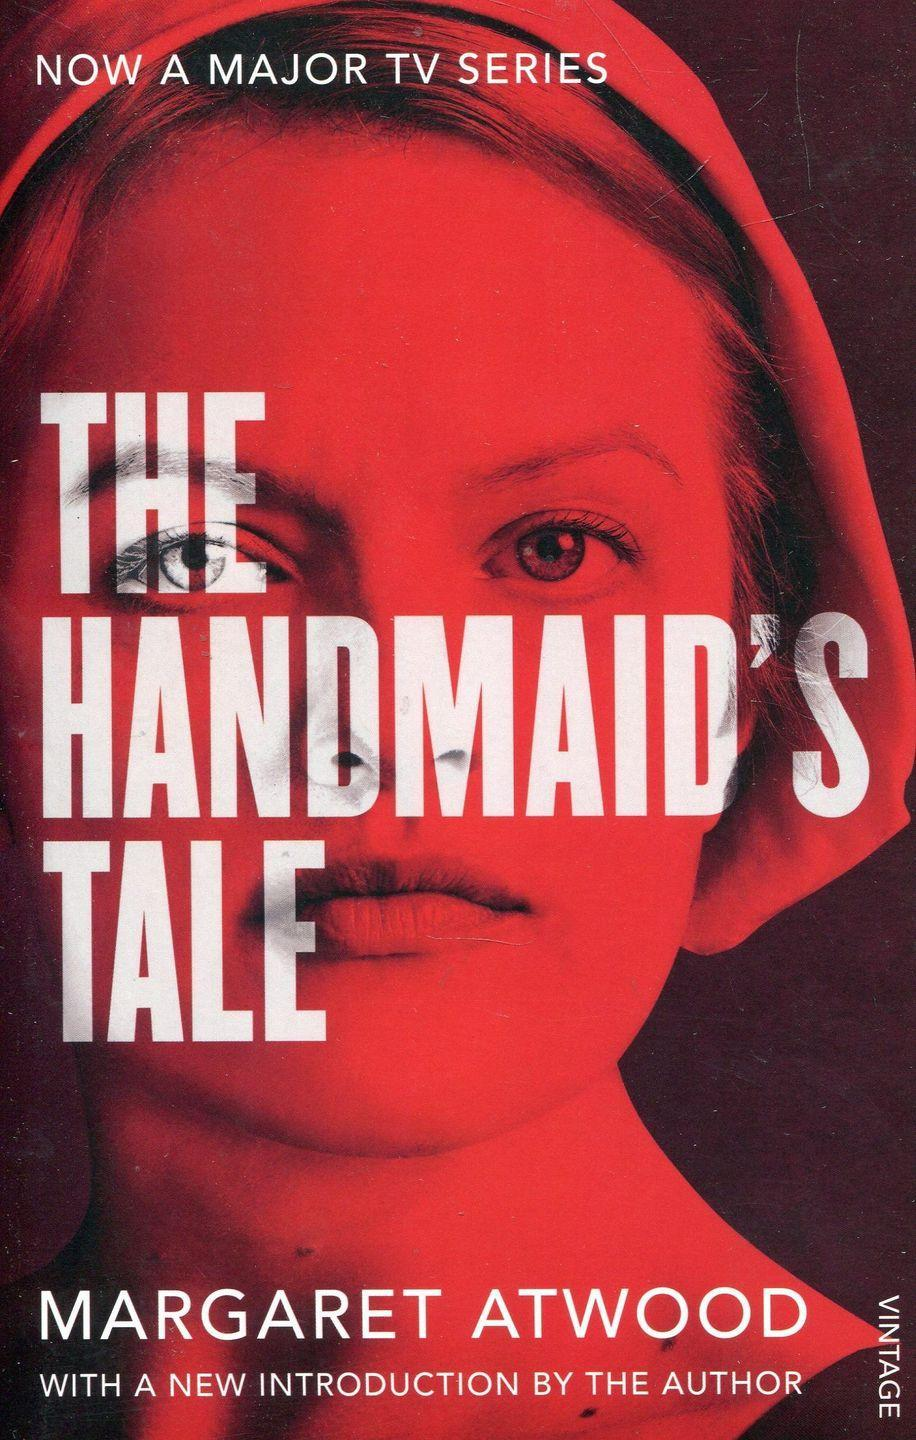 "<p>Now an award-winning TV series starring Elizabeth Moss, The Handmaid's Tale tells the story of Offred, a handmaid in a totalitarian state. </p><p><a class=""link rapid-noclick-resp"" href=""https://www.amazon.co.uk/Handmaids-Tale-Vintage-Classics/dp/1784873187/ref=sr_1_1?crid=3FKGBALQ6MQFJ&dchild=1&keywords=handmaids+tale&qid=1586947161&sprefix=handmaid%2Caps%2C193&sr=8-1&tag=hearstuk-yahoo-21&ascsubtag=%5Bartid%7C1921.g.32141605%5Bsrc%7Cyahoo-uk"" rel=""nofollow noopener"" target=""_blank"" data-ylk=""slk:SHOP NOW"">SHOP NOW </a></p>"